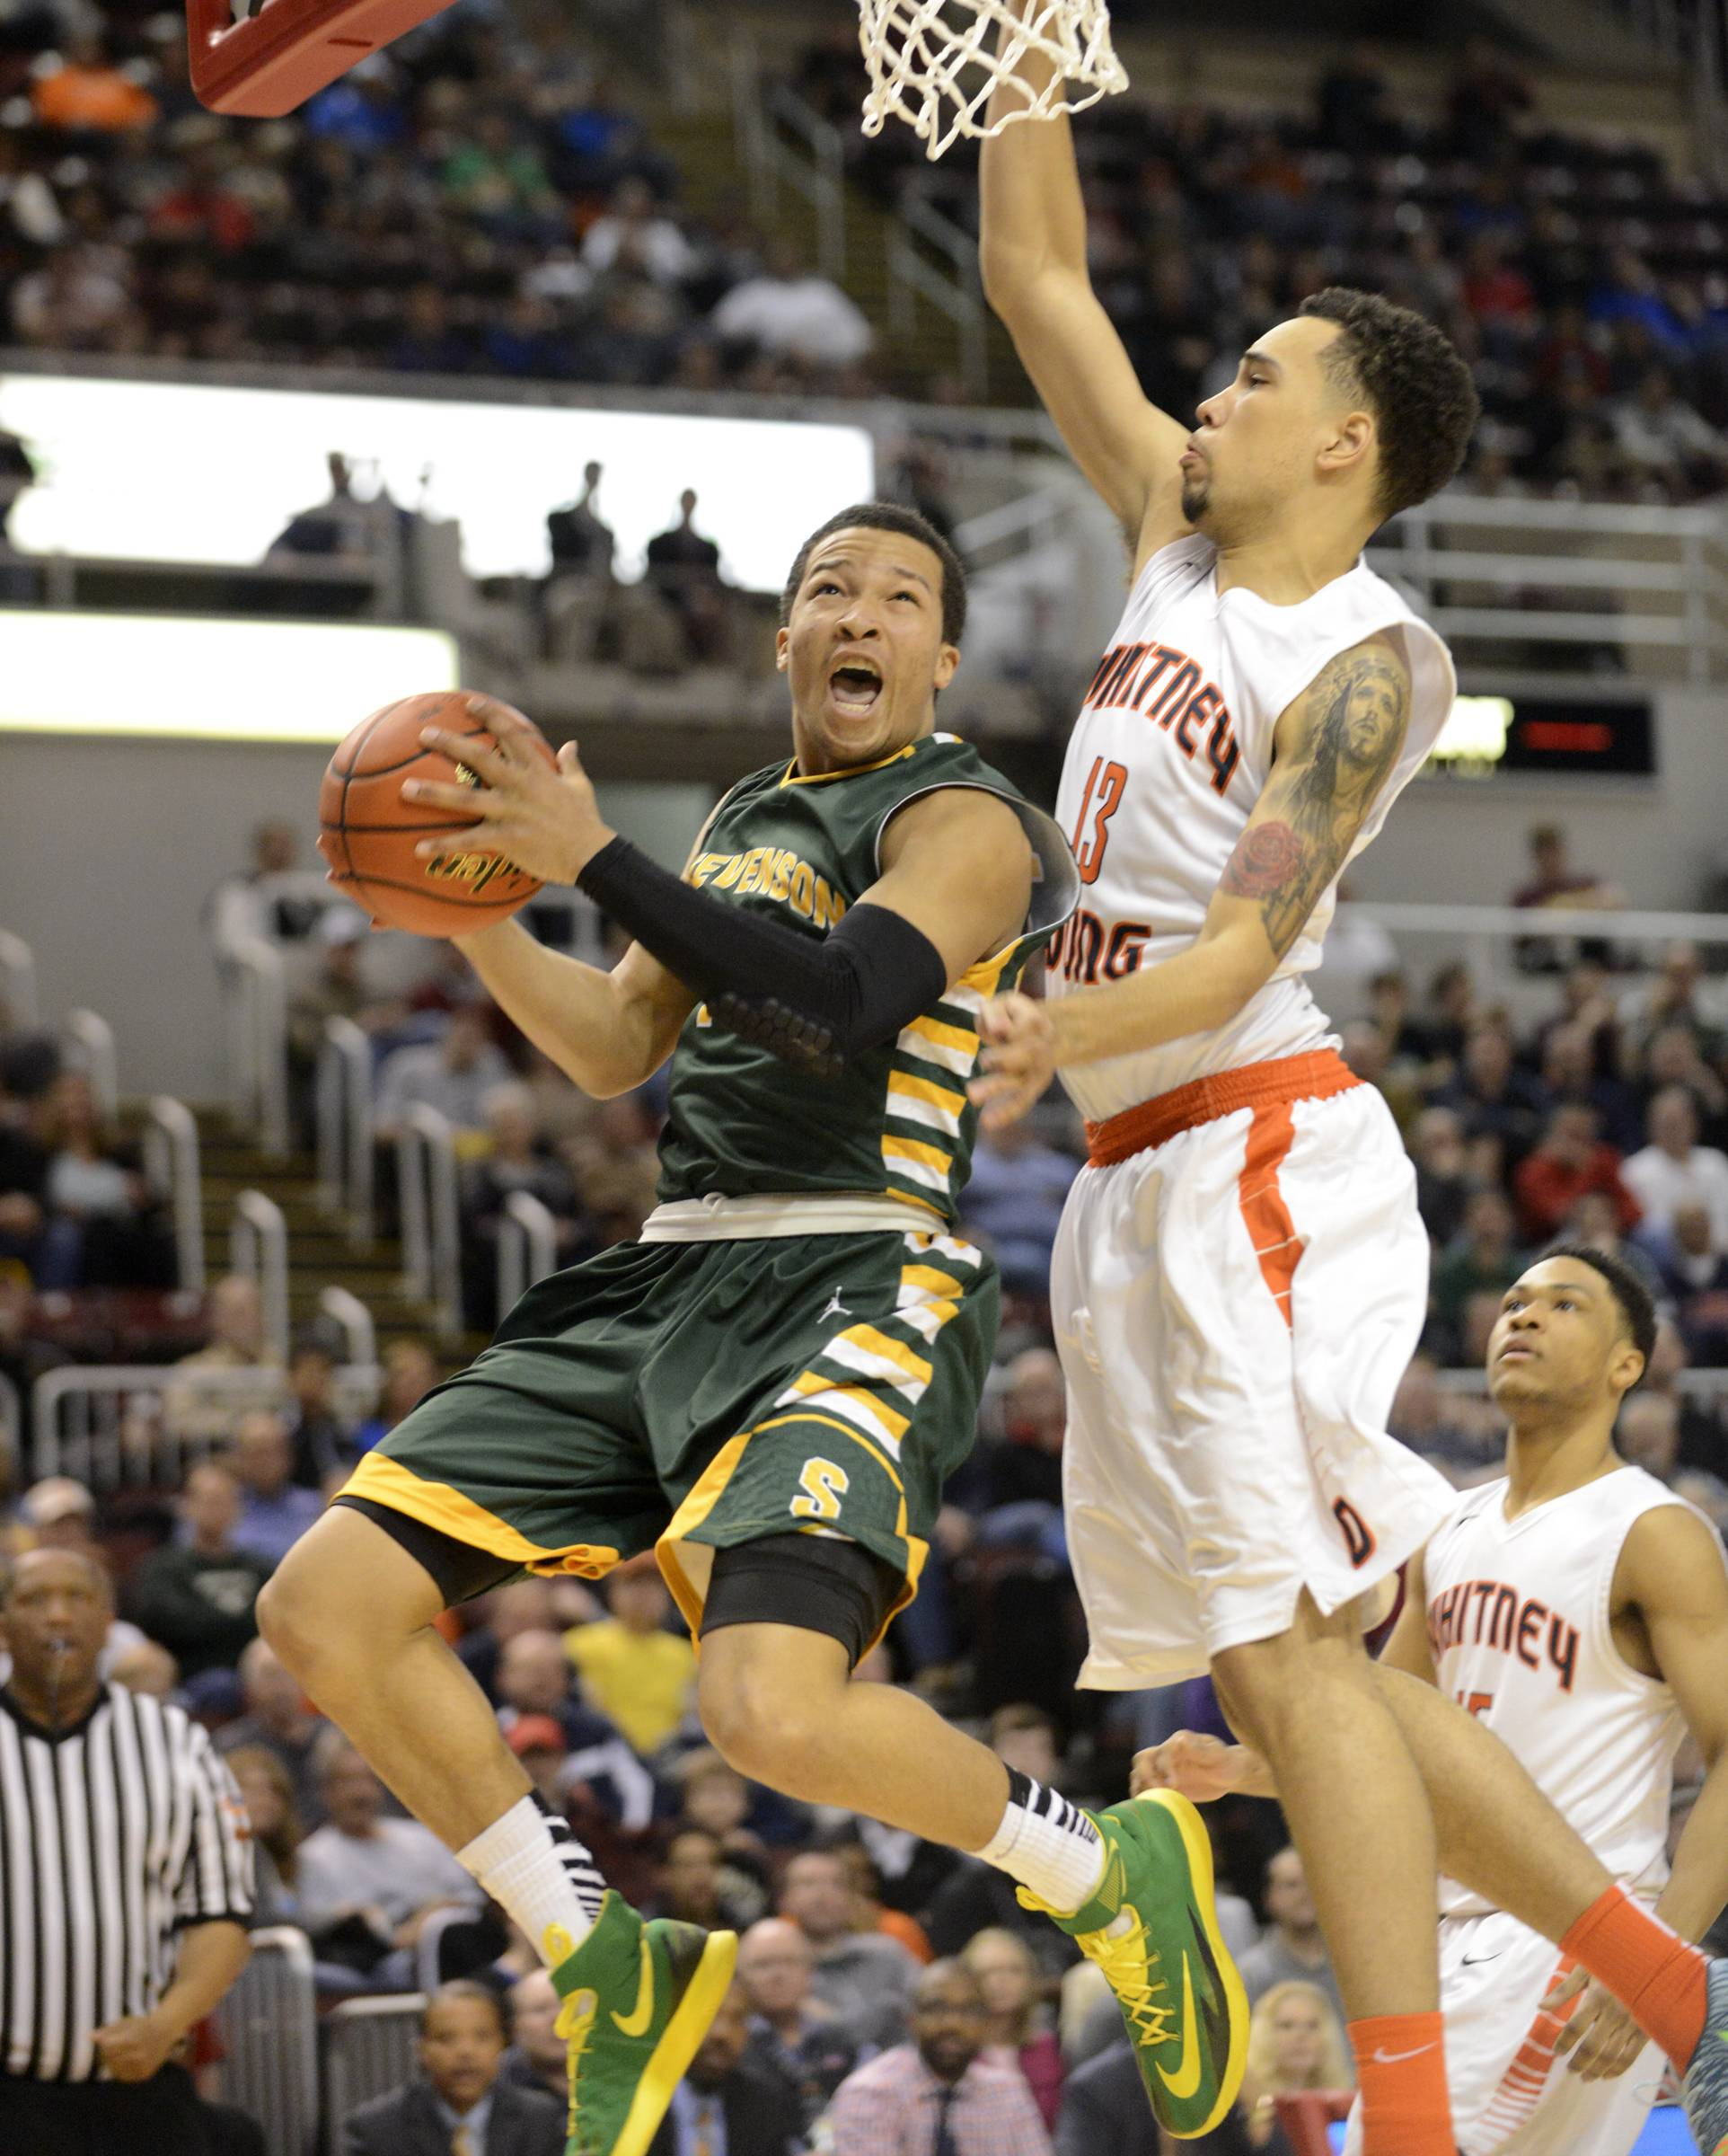 Stevenson falls as the Brunson legend grows